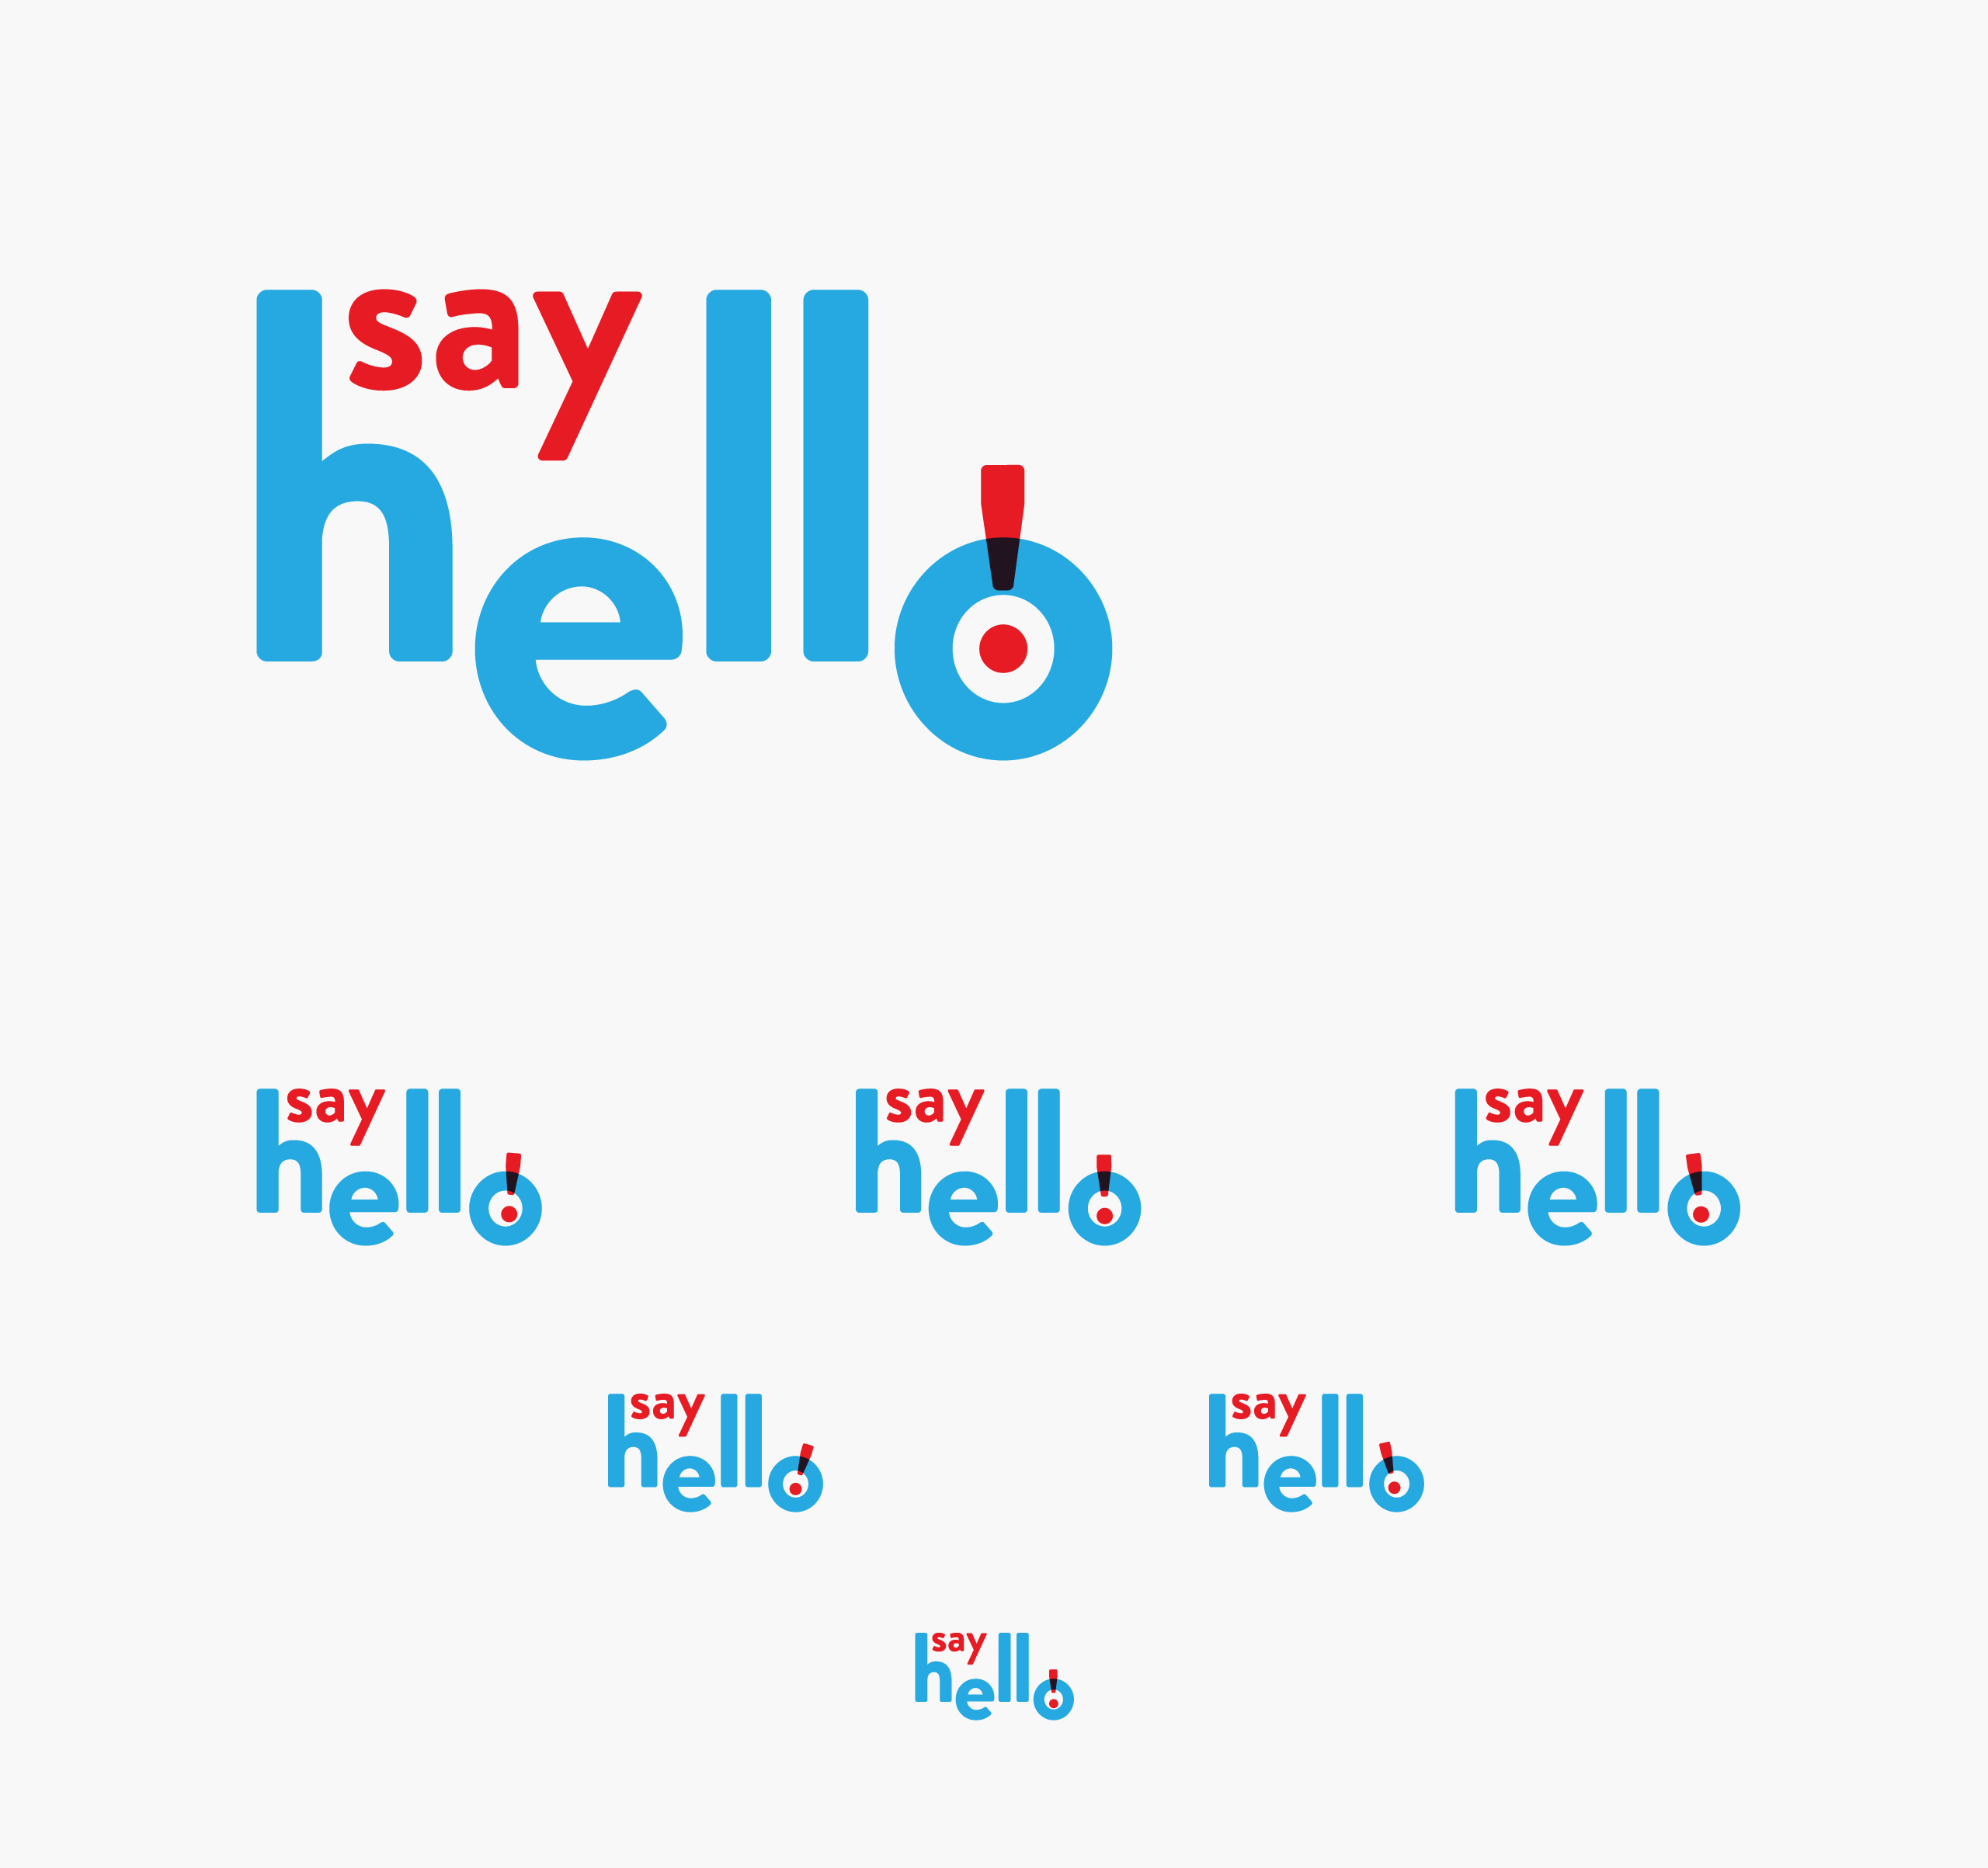 A geometric arrangement of Say Hello logo with all of the eyes looking down from their perspective positions — by Dima Yagnyuk.